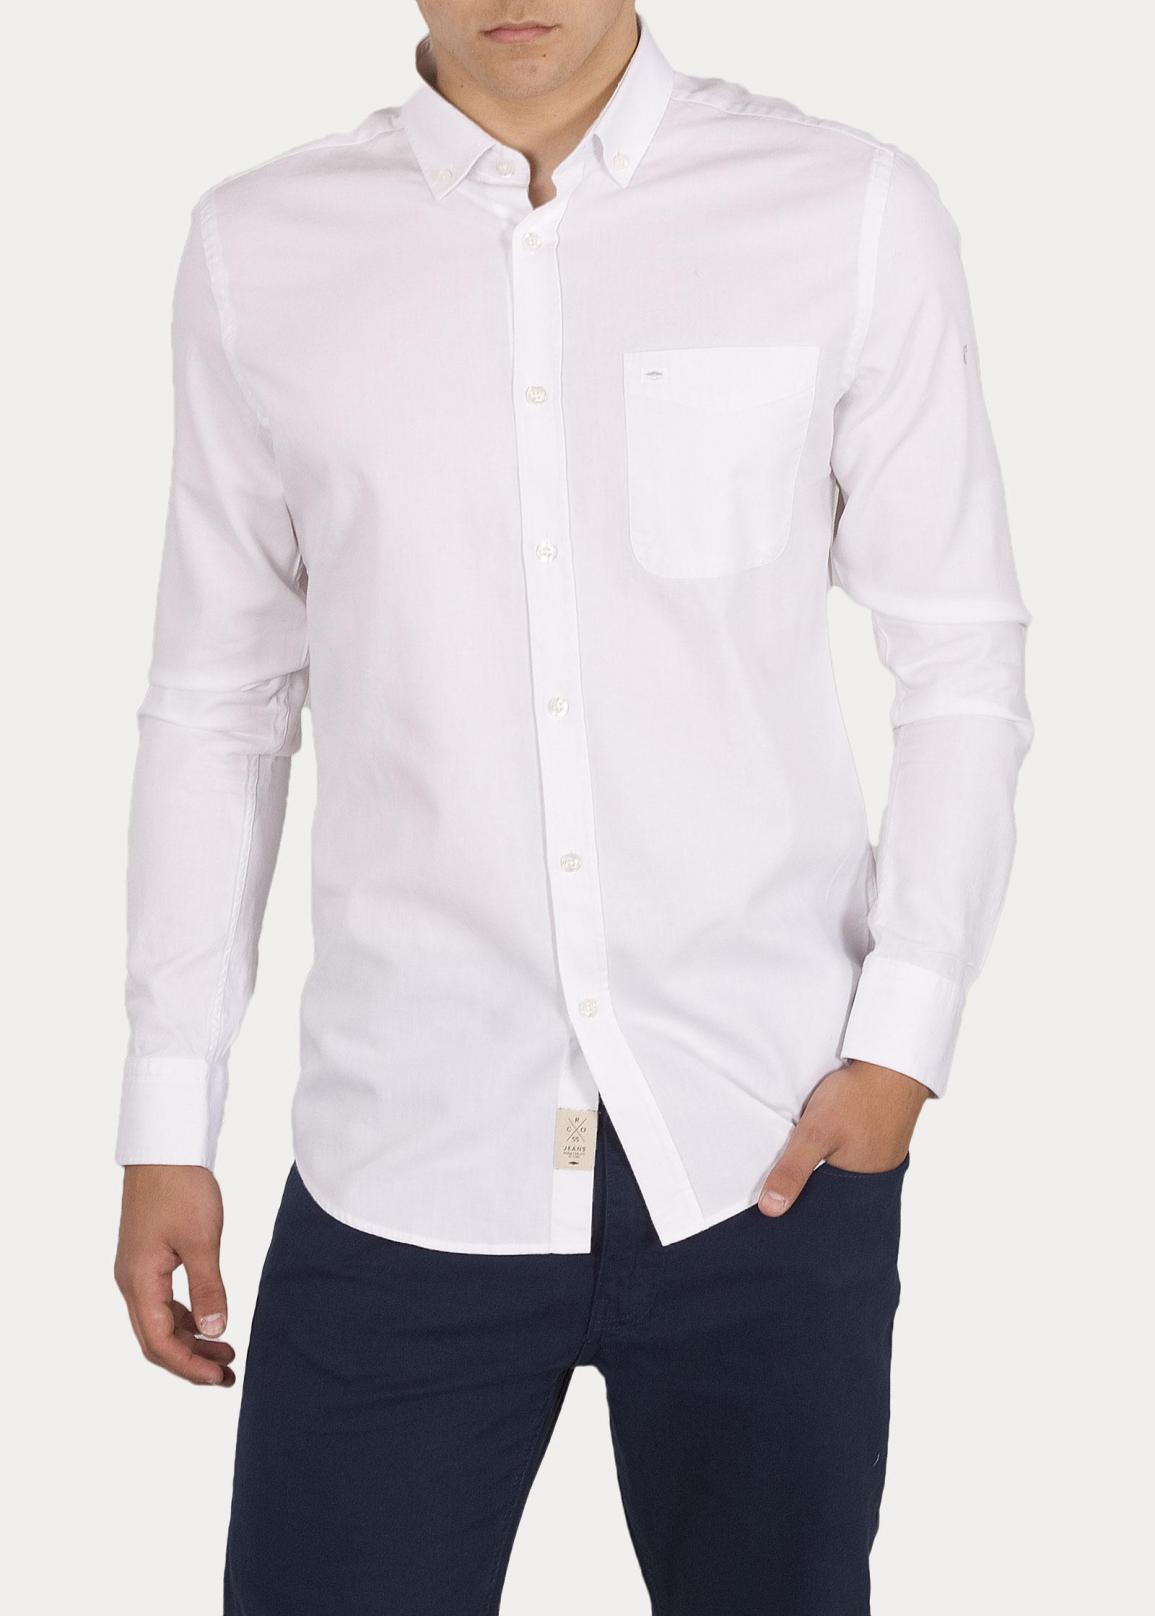 Cross Jeans® Shirt 35253 - White (008)